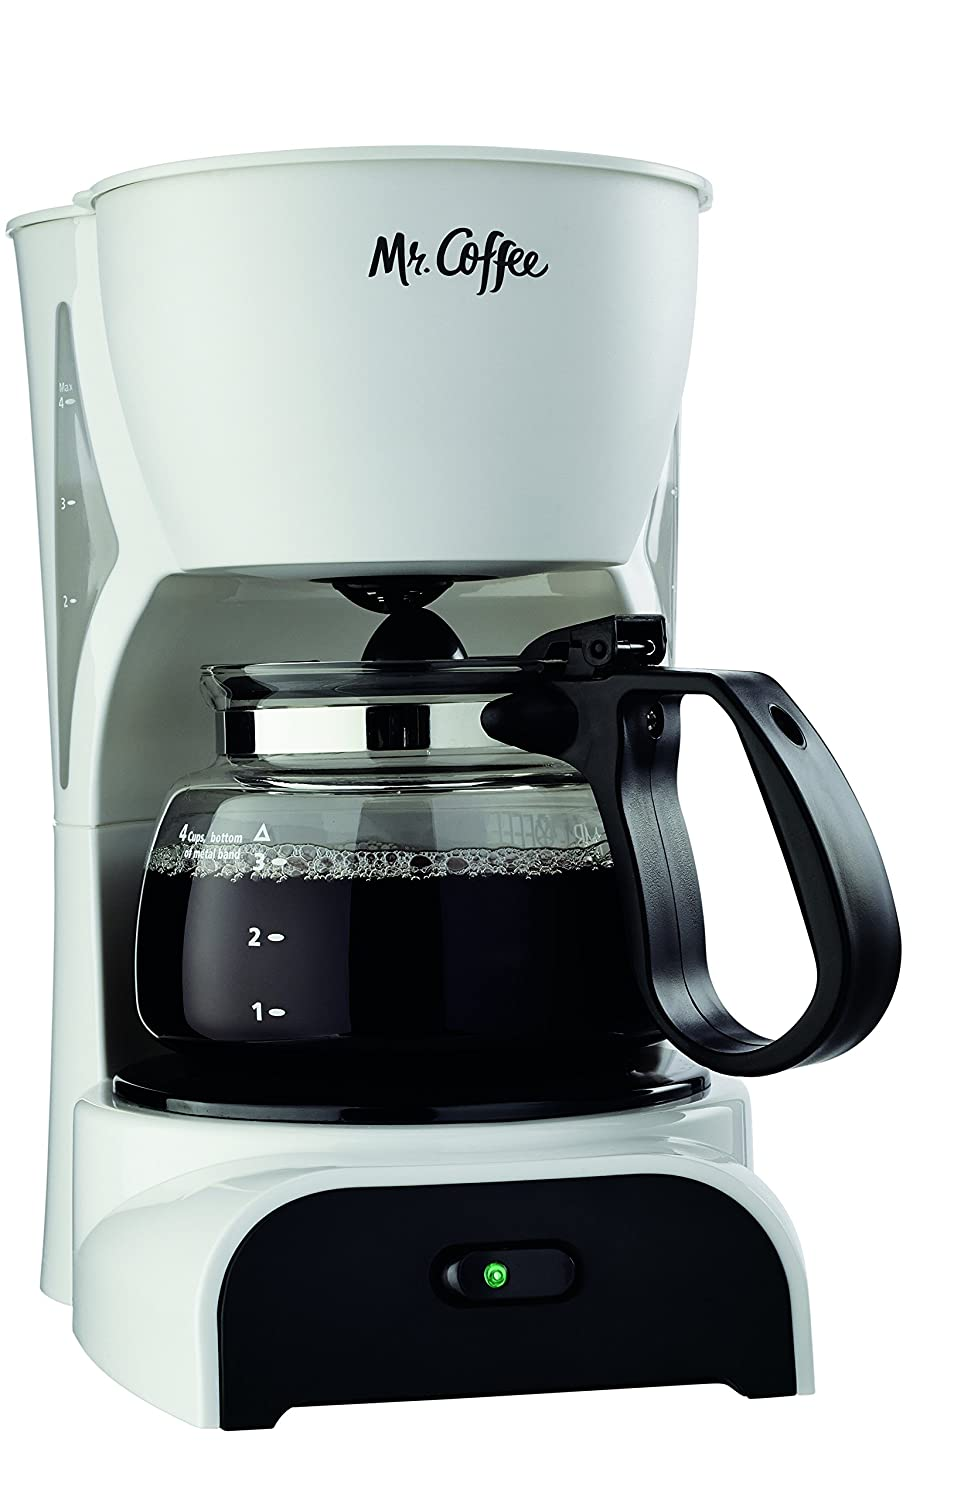 Mr. Coffee 4-Cup Coffee Maker, White Jarden Consumer Solutions DR4-RB